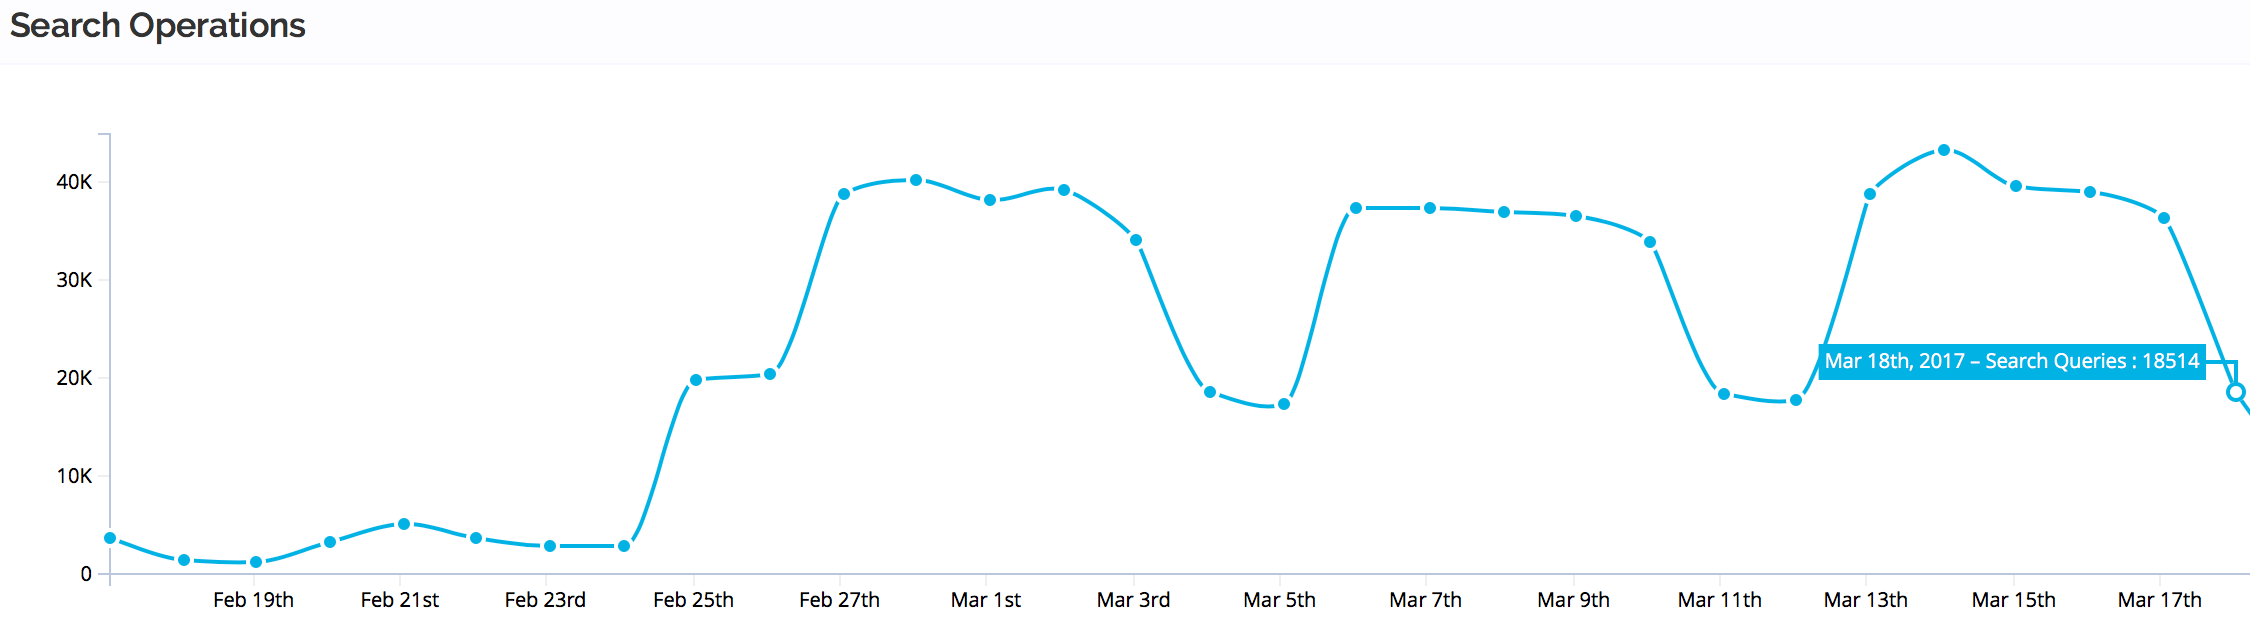 Search statistics, showing a bit less than 40000 searches a day in the week, and 16000 in the weekend